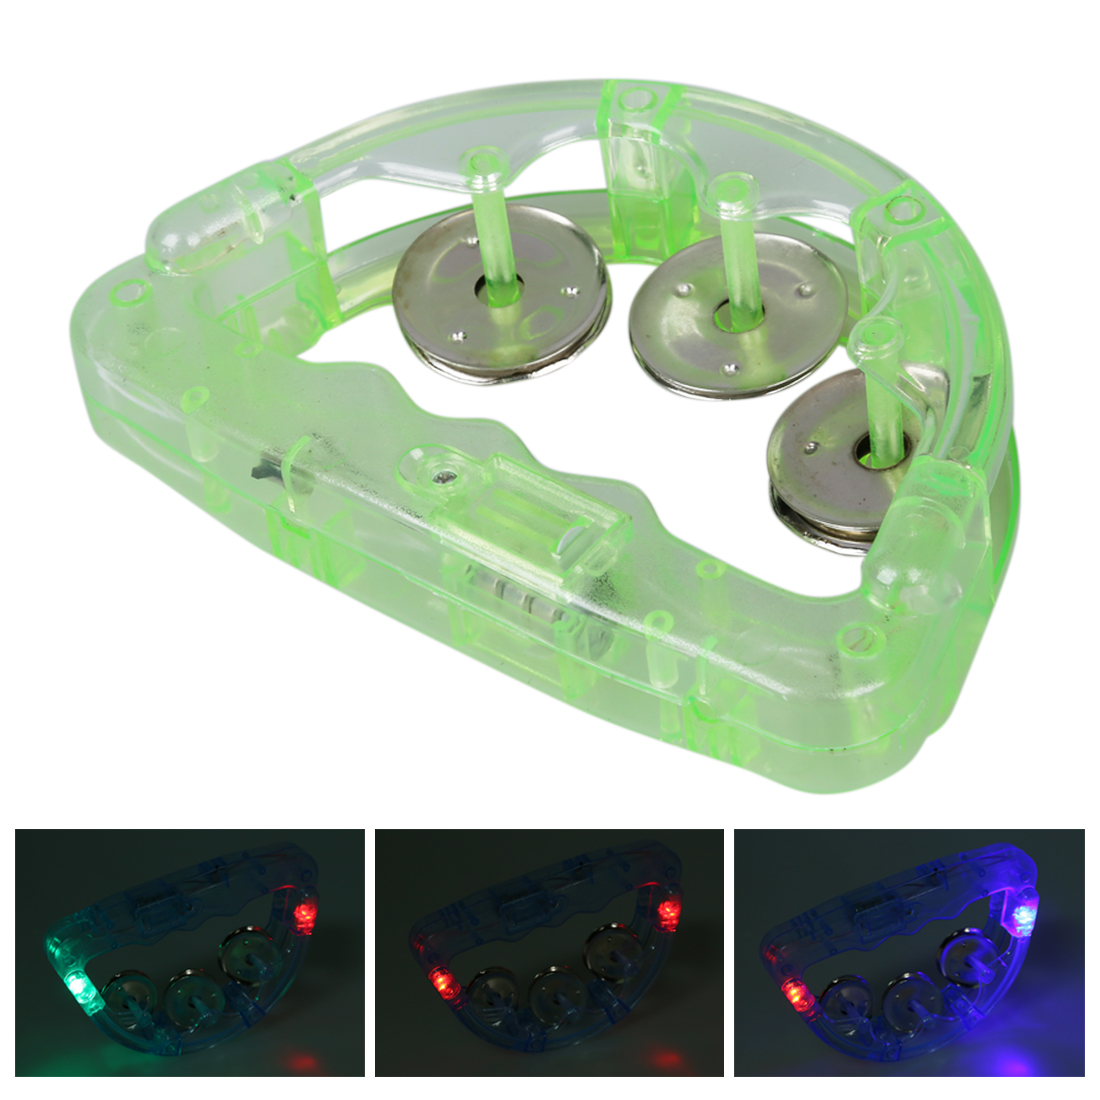 2 Flashing Light LED TAMBOURINE for Fun KTV Party Dancing